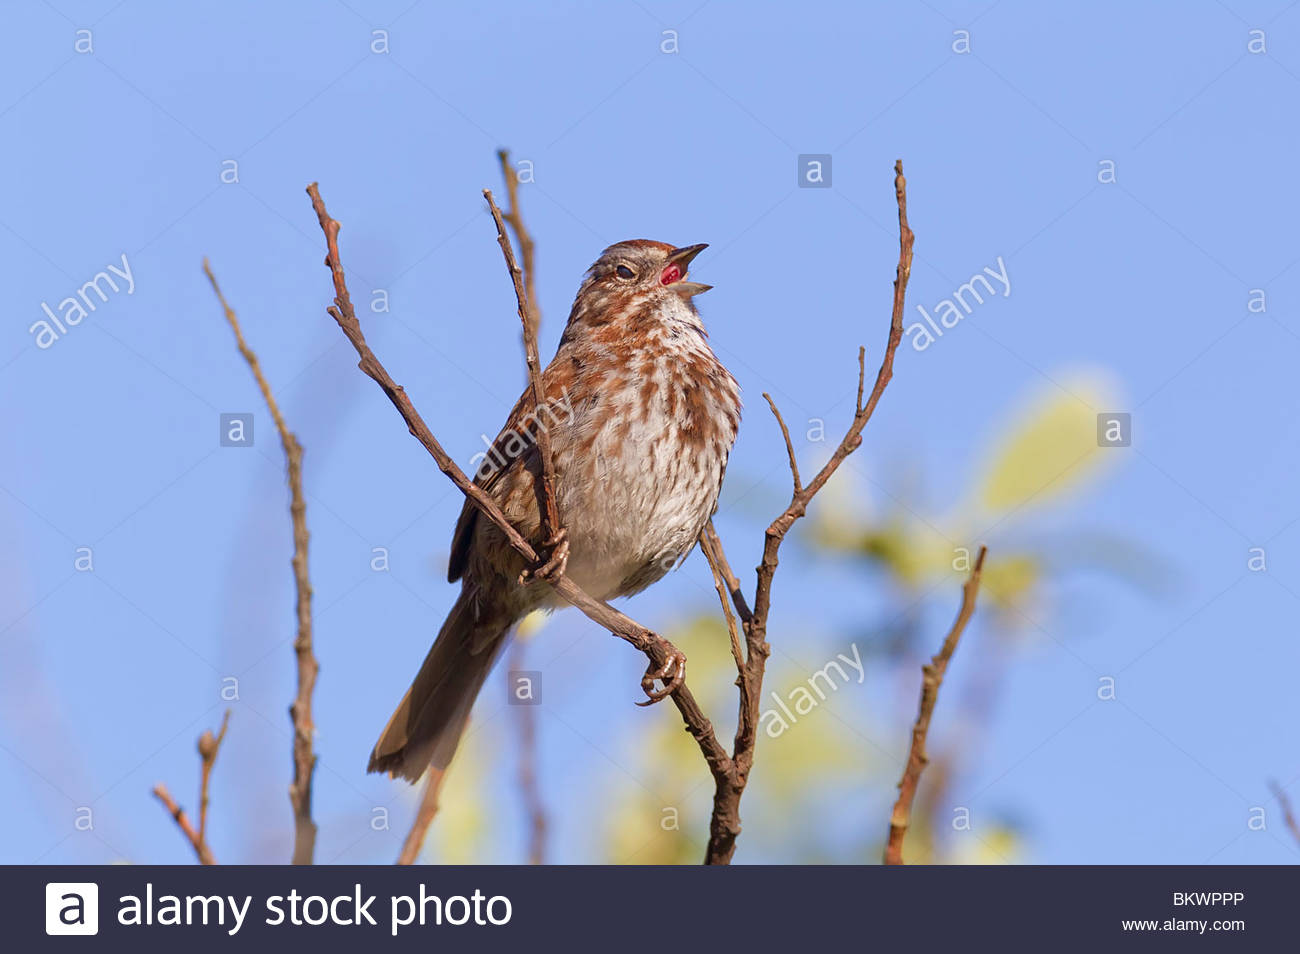 A song sparrow (Melospiza melodia) sings from a perch high in a tree in the Grays Harbor National Wildlife Refuge. - Stock Image